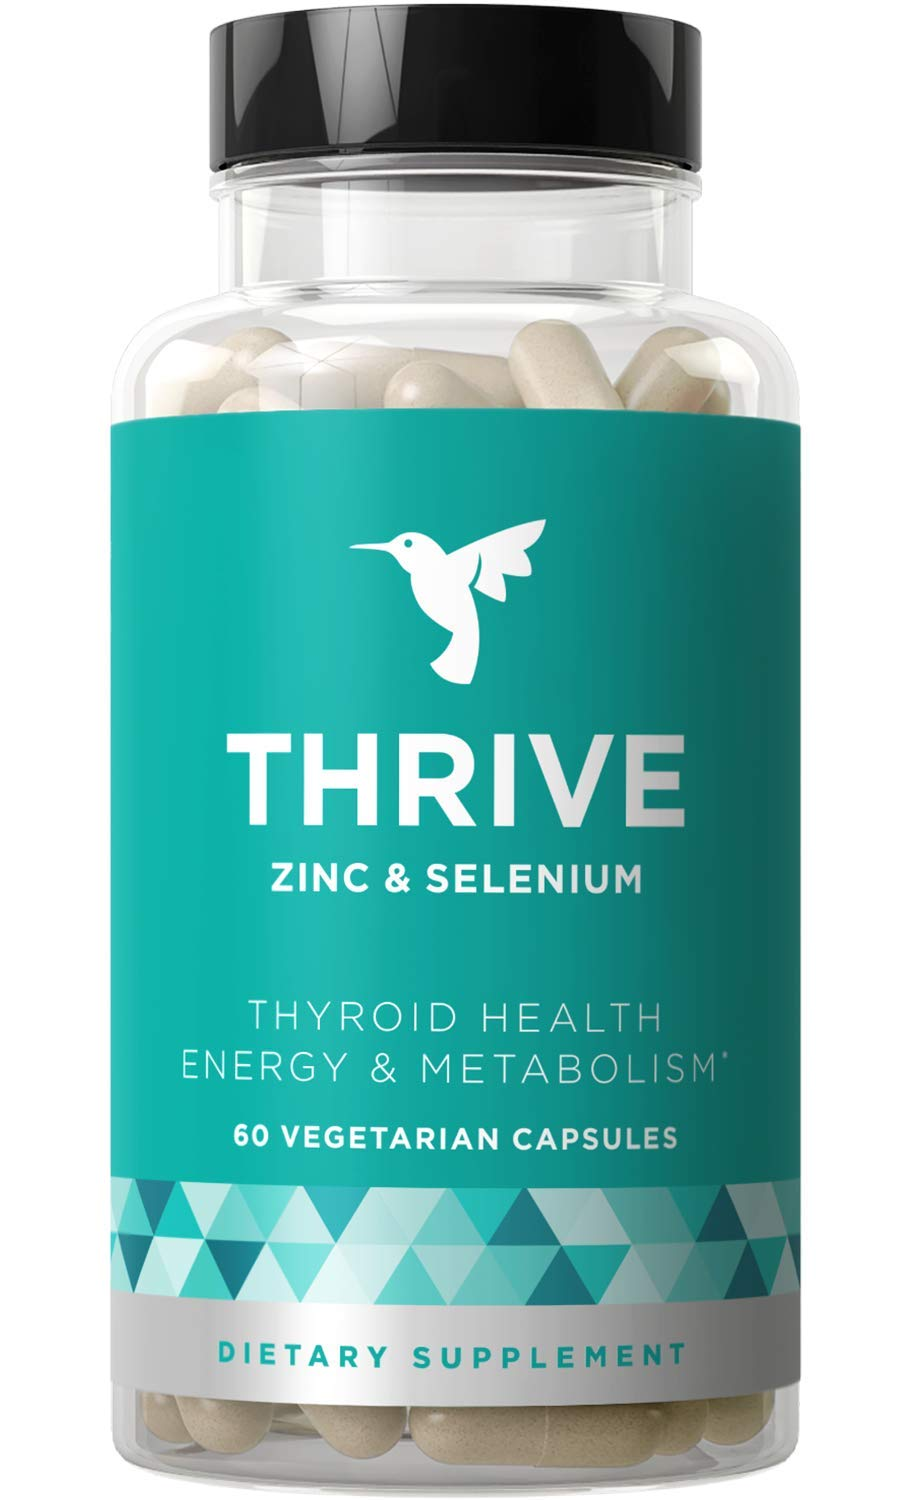 Thrive Thyroid Support & Energy Metabolism - Naturally Fight Fatigue, Balance Hormones, Promote Focused Energy - Zinc, Selenium, Iodine - 60 Vegetarian Soft Capsules by Eu Natural